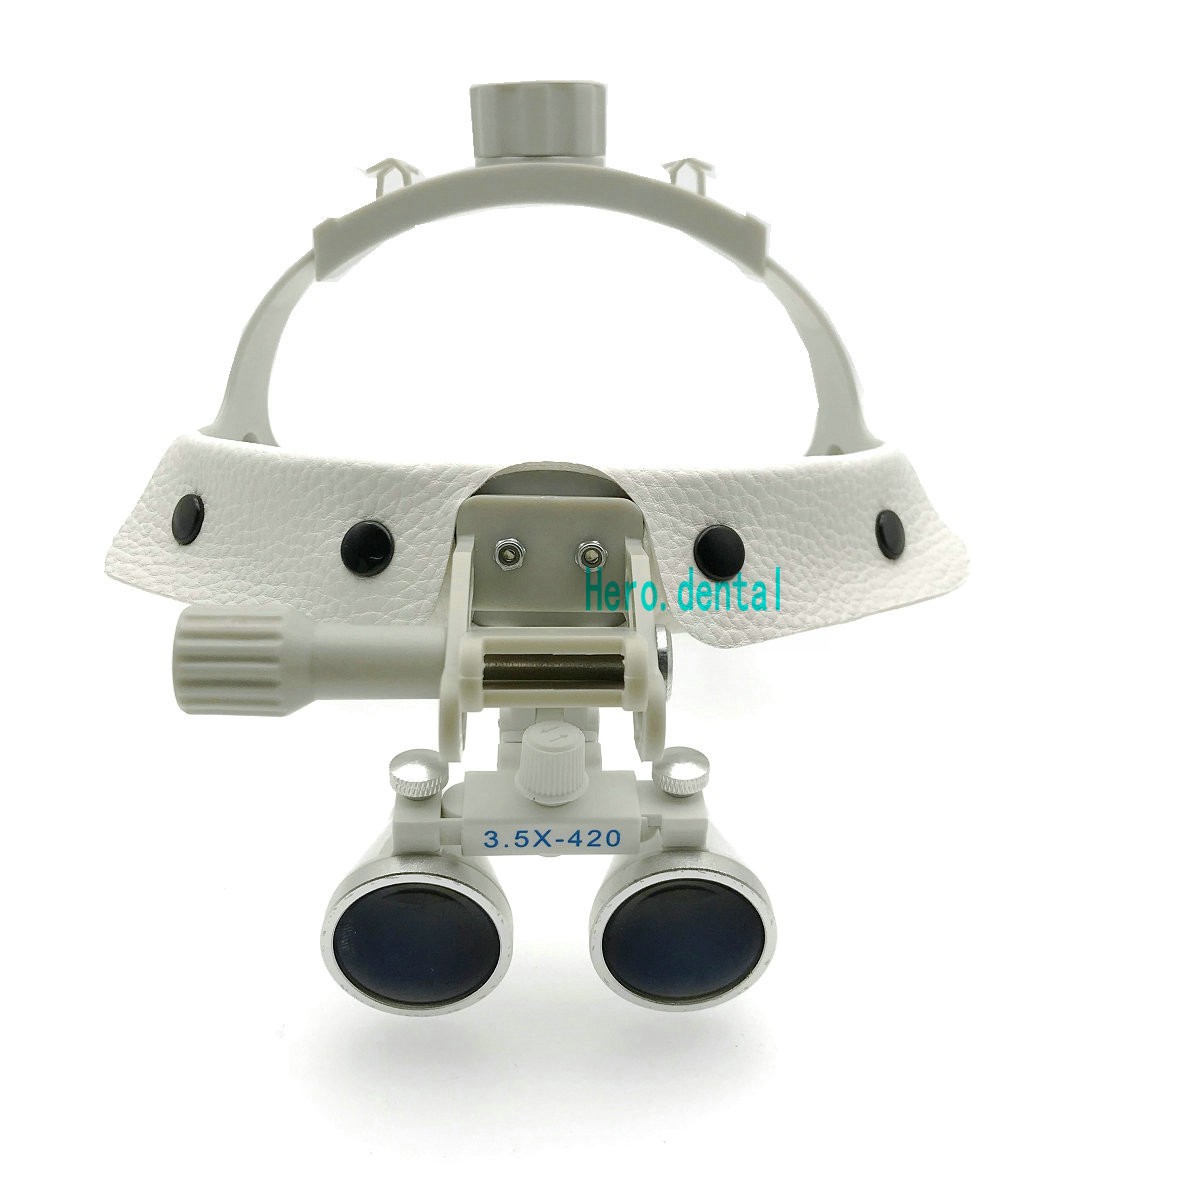 3.5X-420 dentaire chirurgical médical bandeau binoculaire Loupes loupe blanc - 2